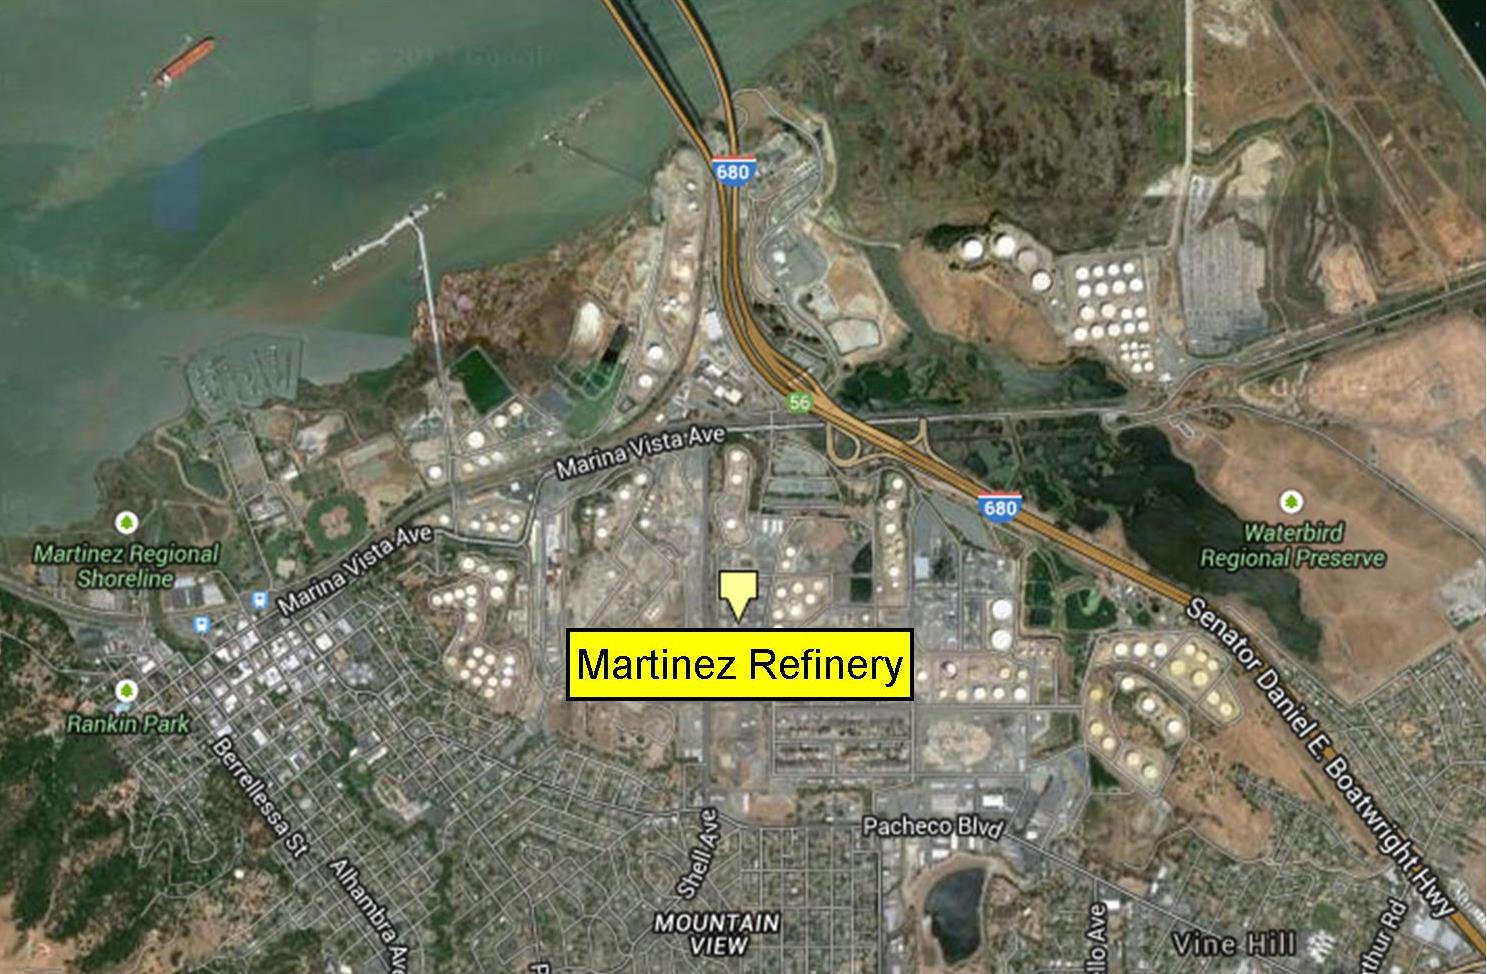 3. Shell Oil Martinez Refinery The Martinez Refinery is the second largest refinery in the Bay Area, after Chevron, and was the first American refinery built by the Shell Oil Company, in 1915.